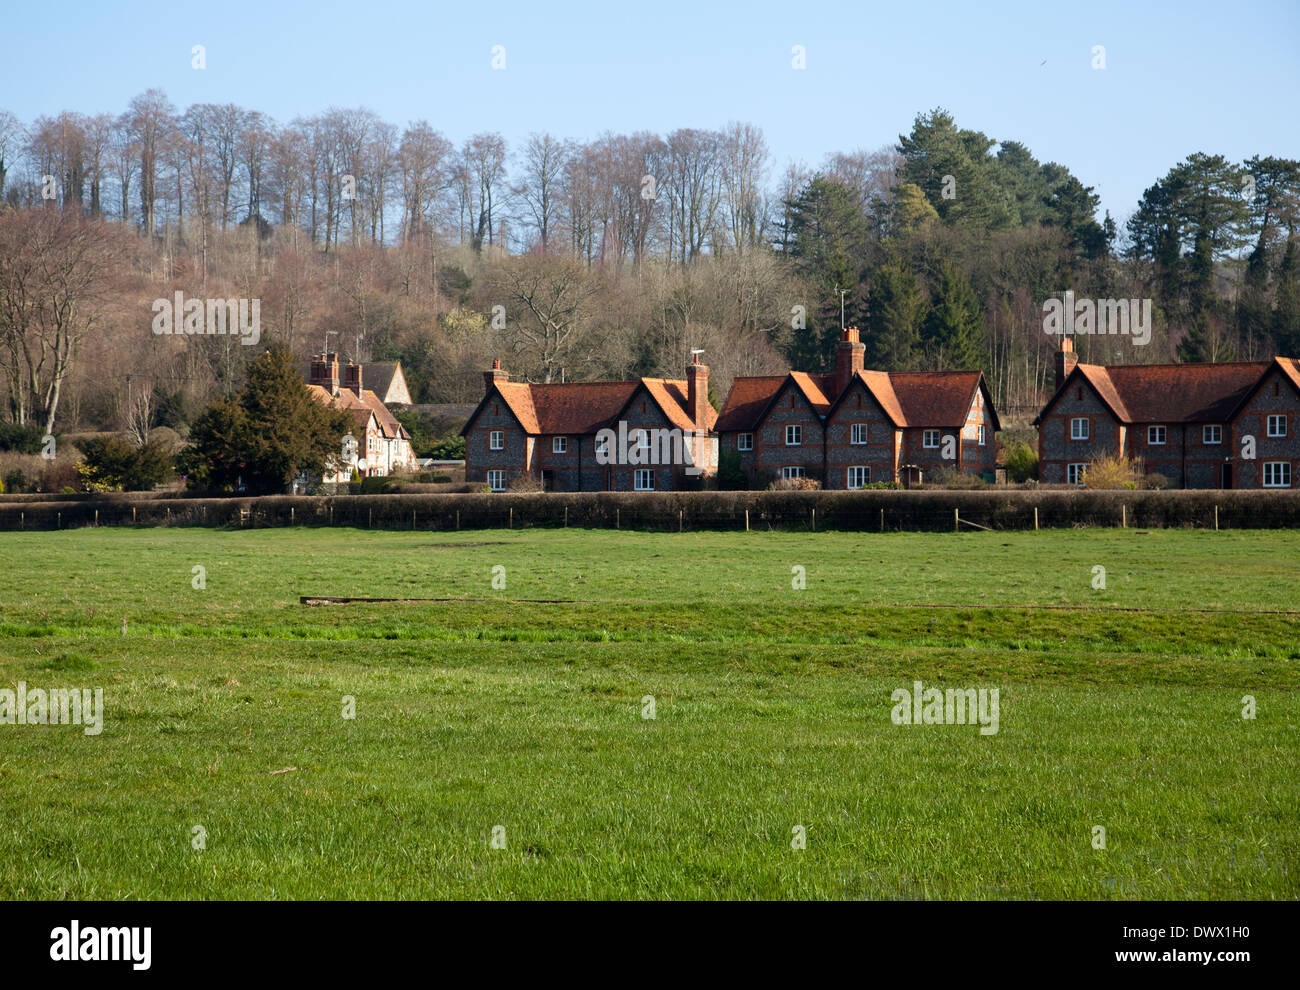 Hambleden Village Homes in Buckinghamshire in UK - Stock Image